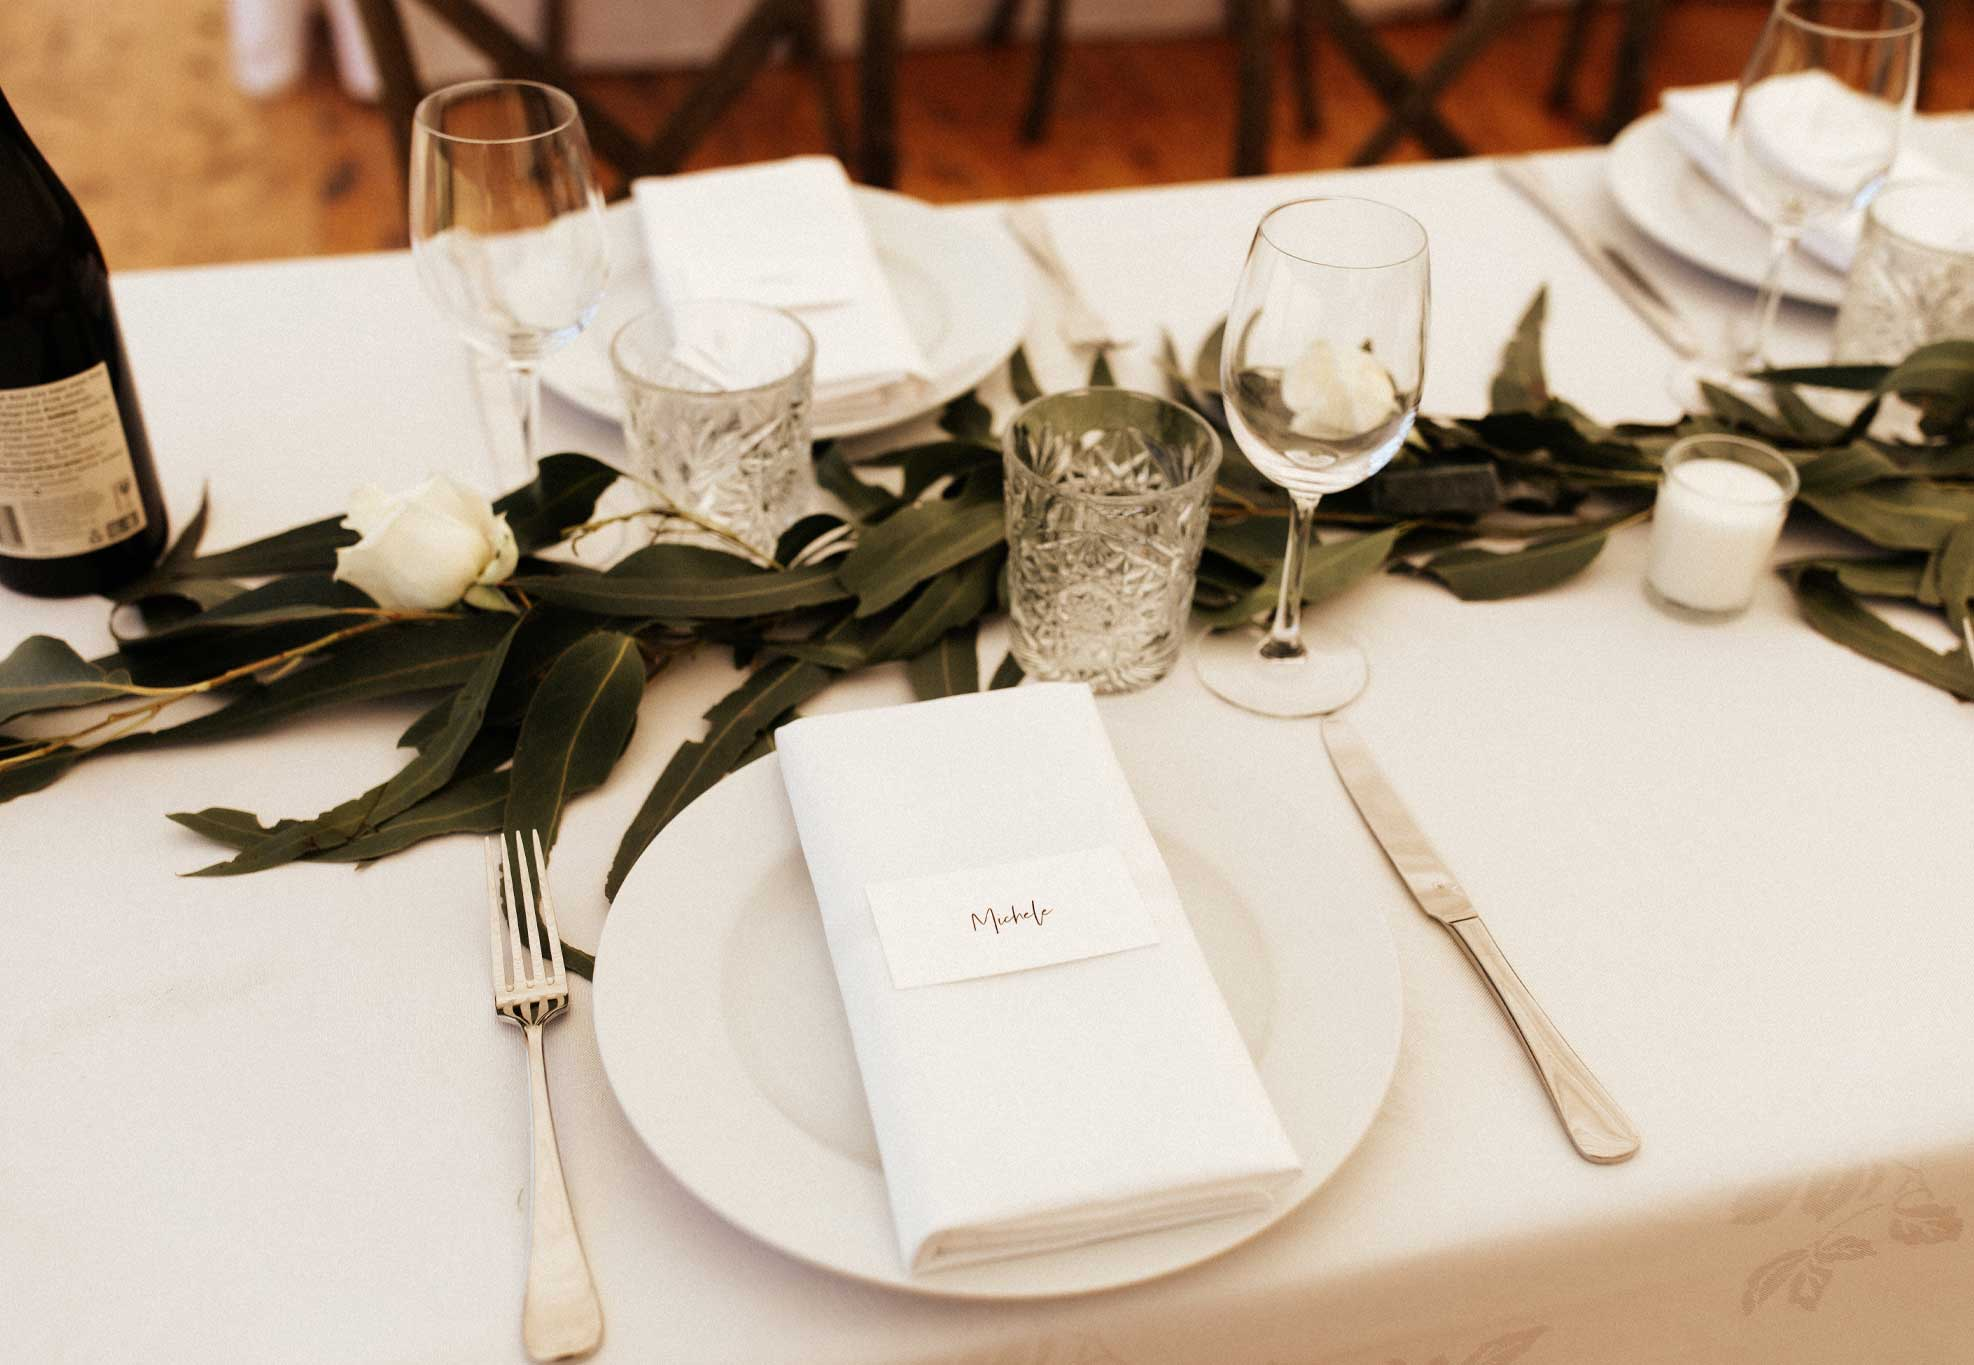 silk-estate-marquee-weddings-and-events-styling-and-hire-decor-napkins-1